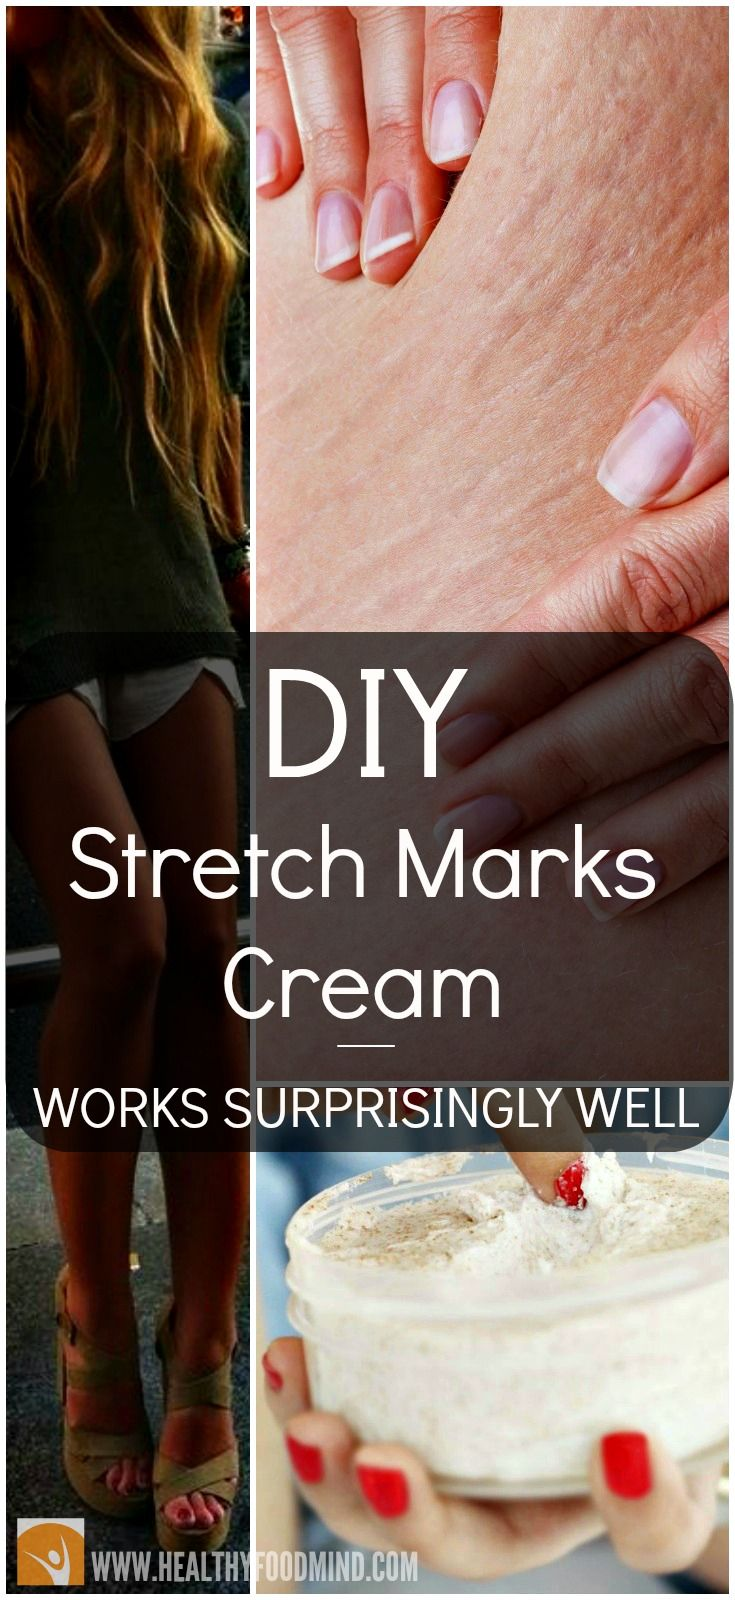 Here is a a recipe for a homemade stretch mark cream that successfully fights the stretch marks as well as cellulite.